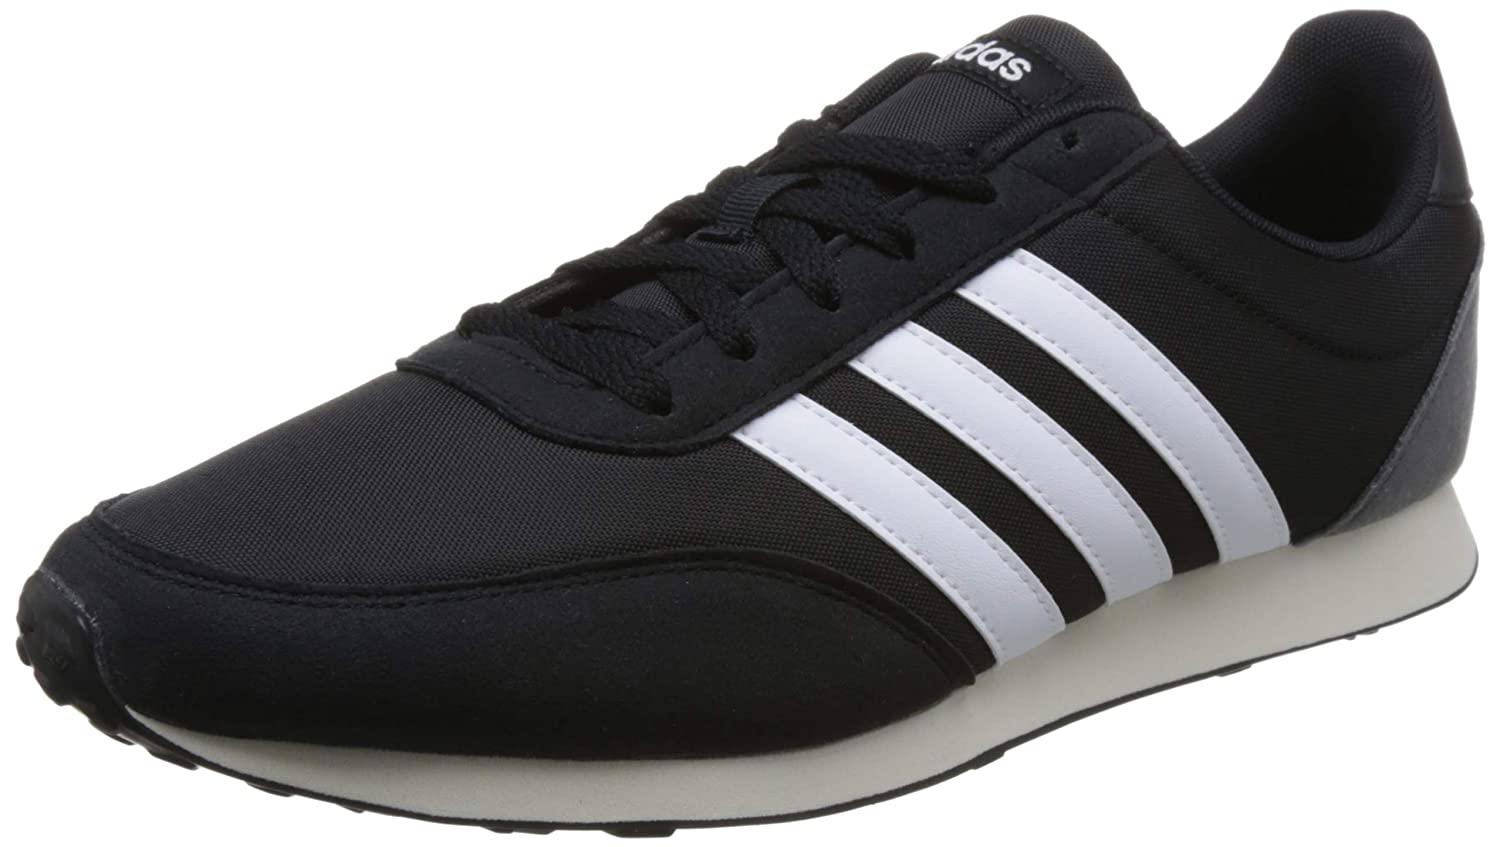 Adidas V Racer 2.0, Chaussures de Running Homme BC0106